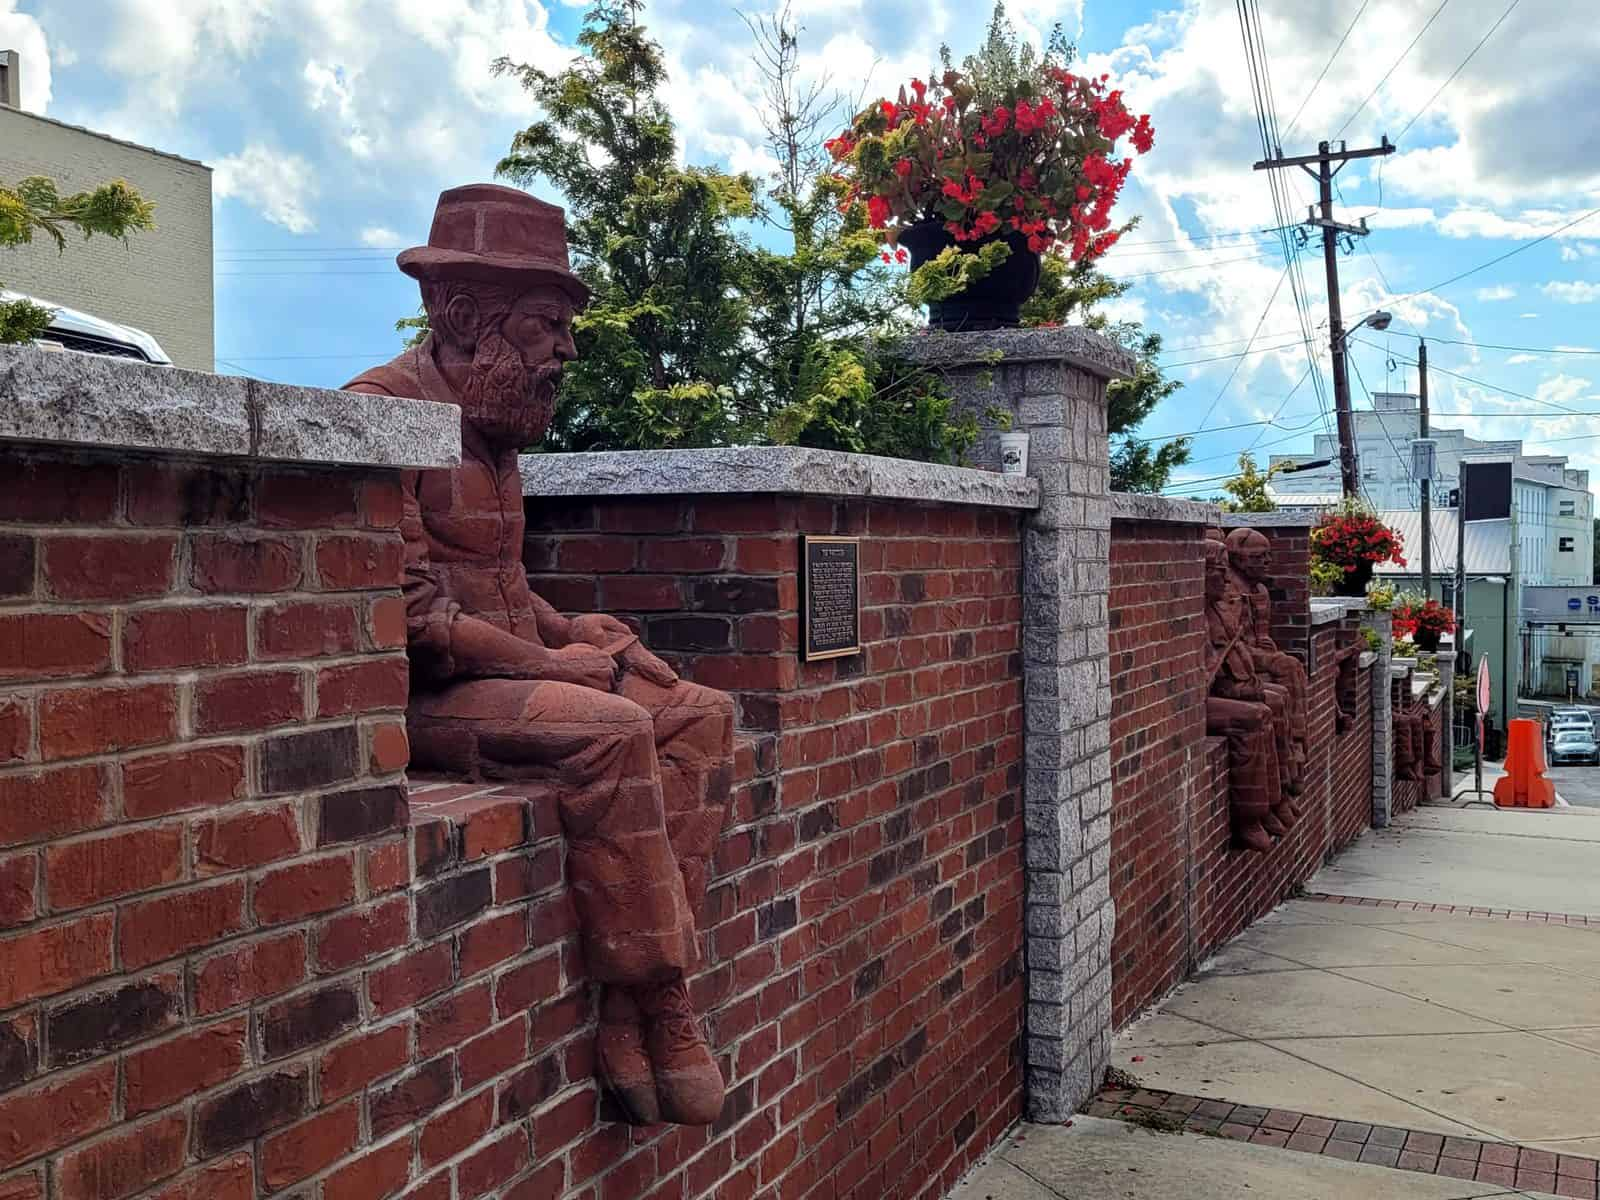 whittle wall, a brick outdoor sculpture, in mount airy north carolina